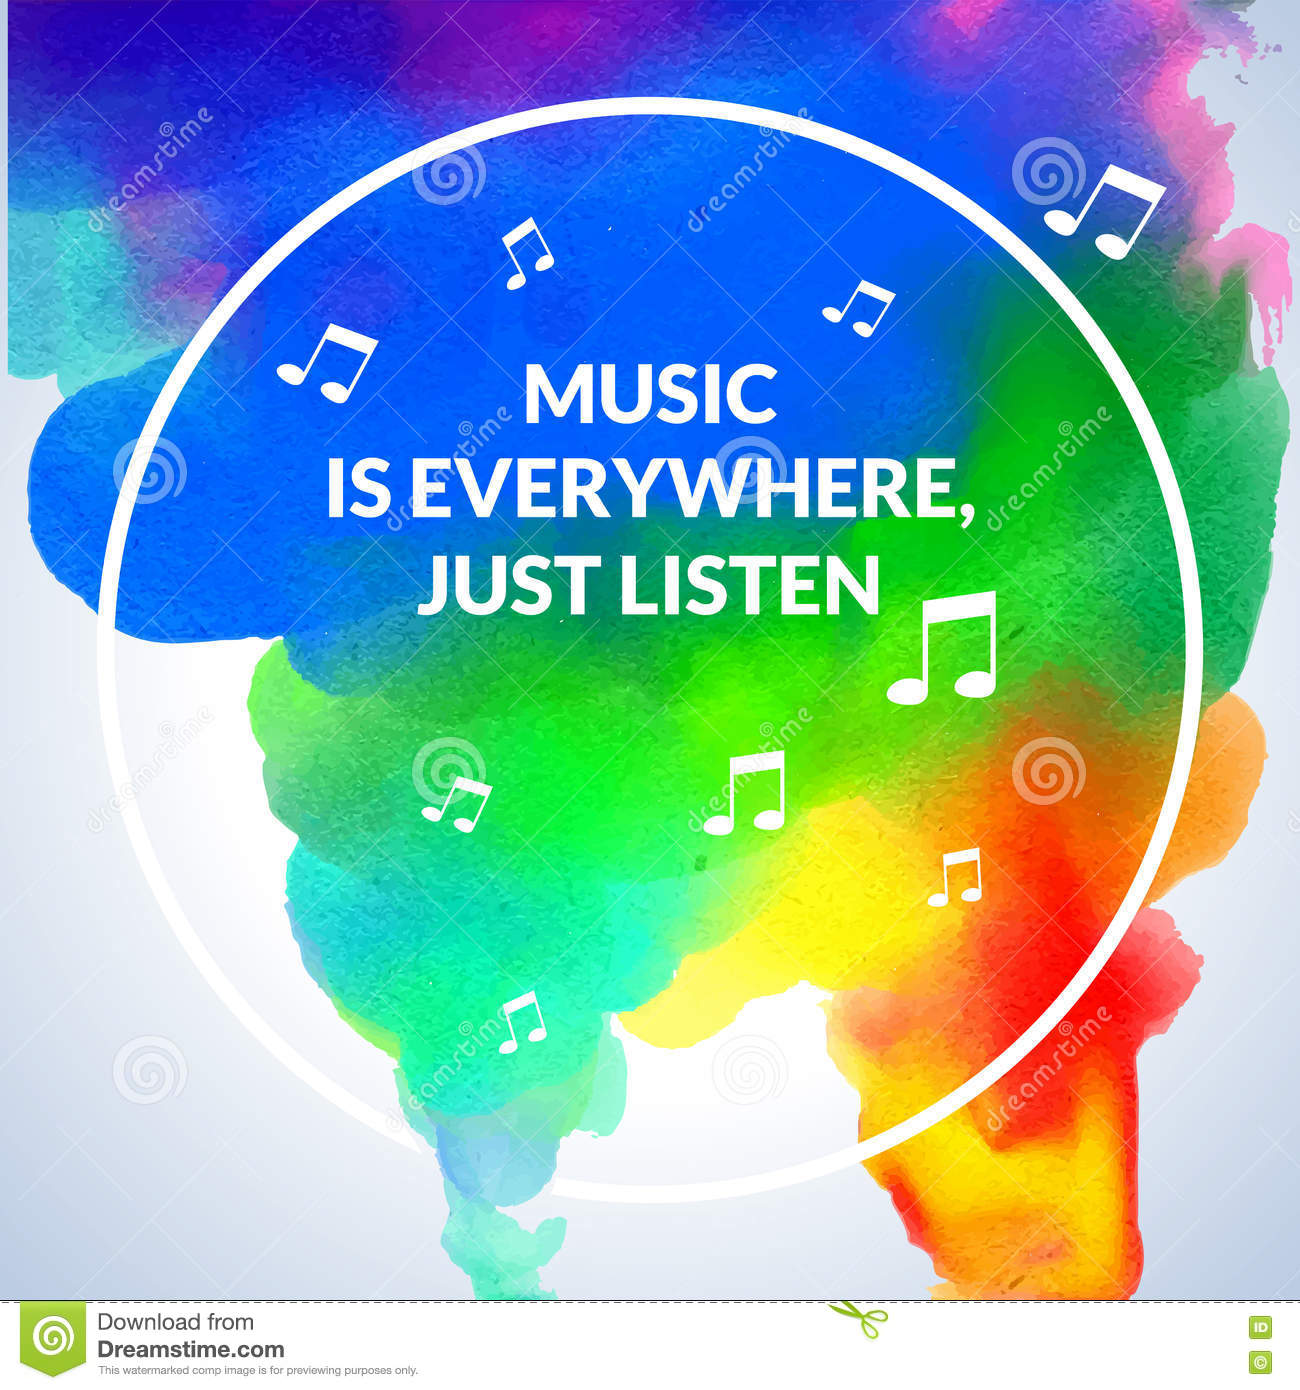 Music is everywhere essay